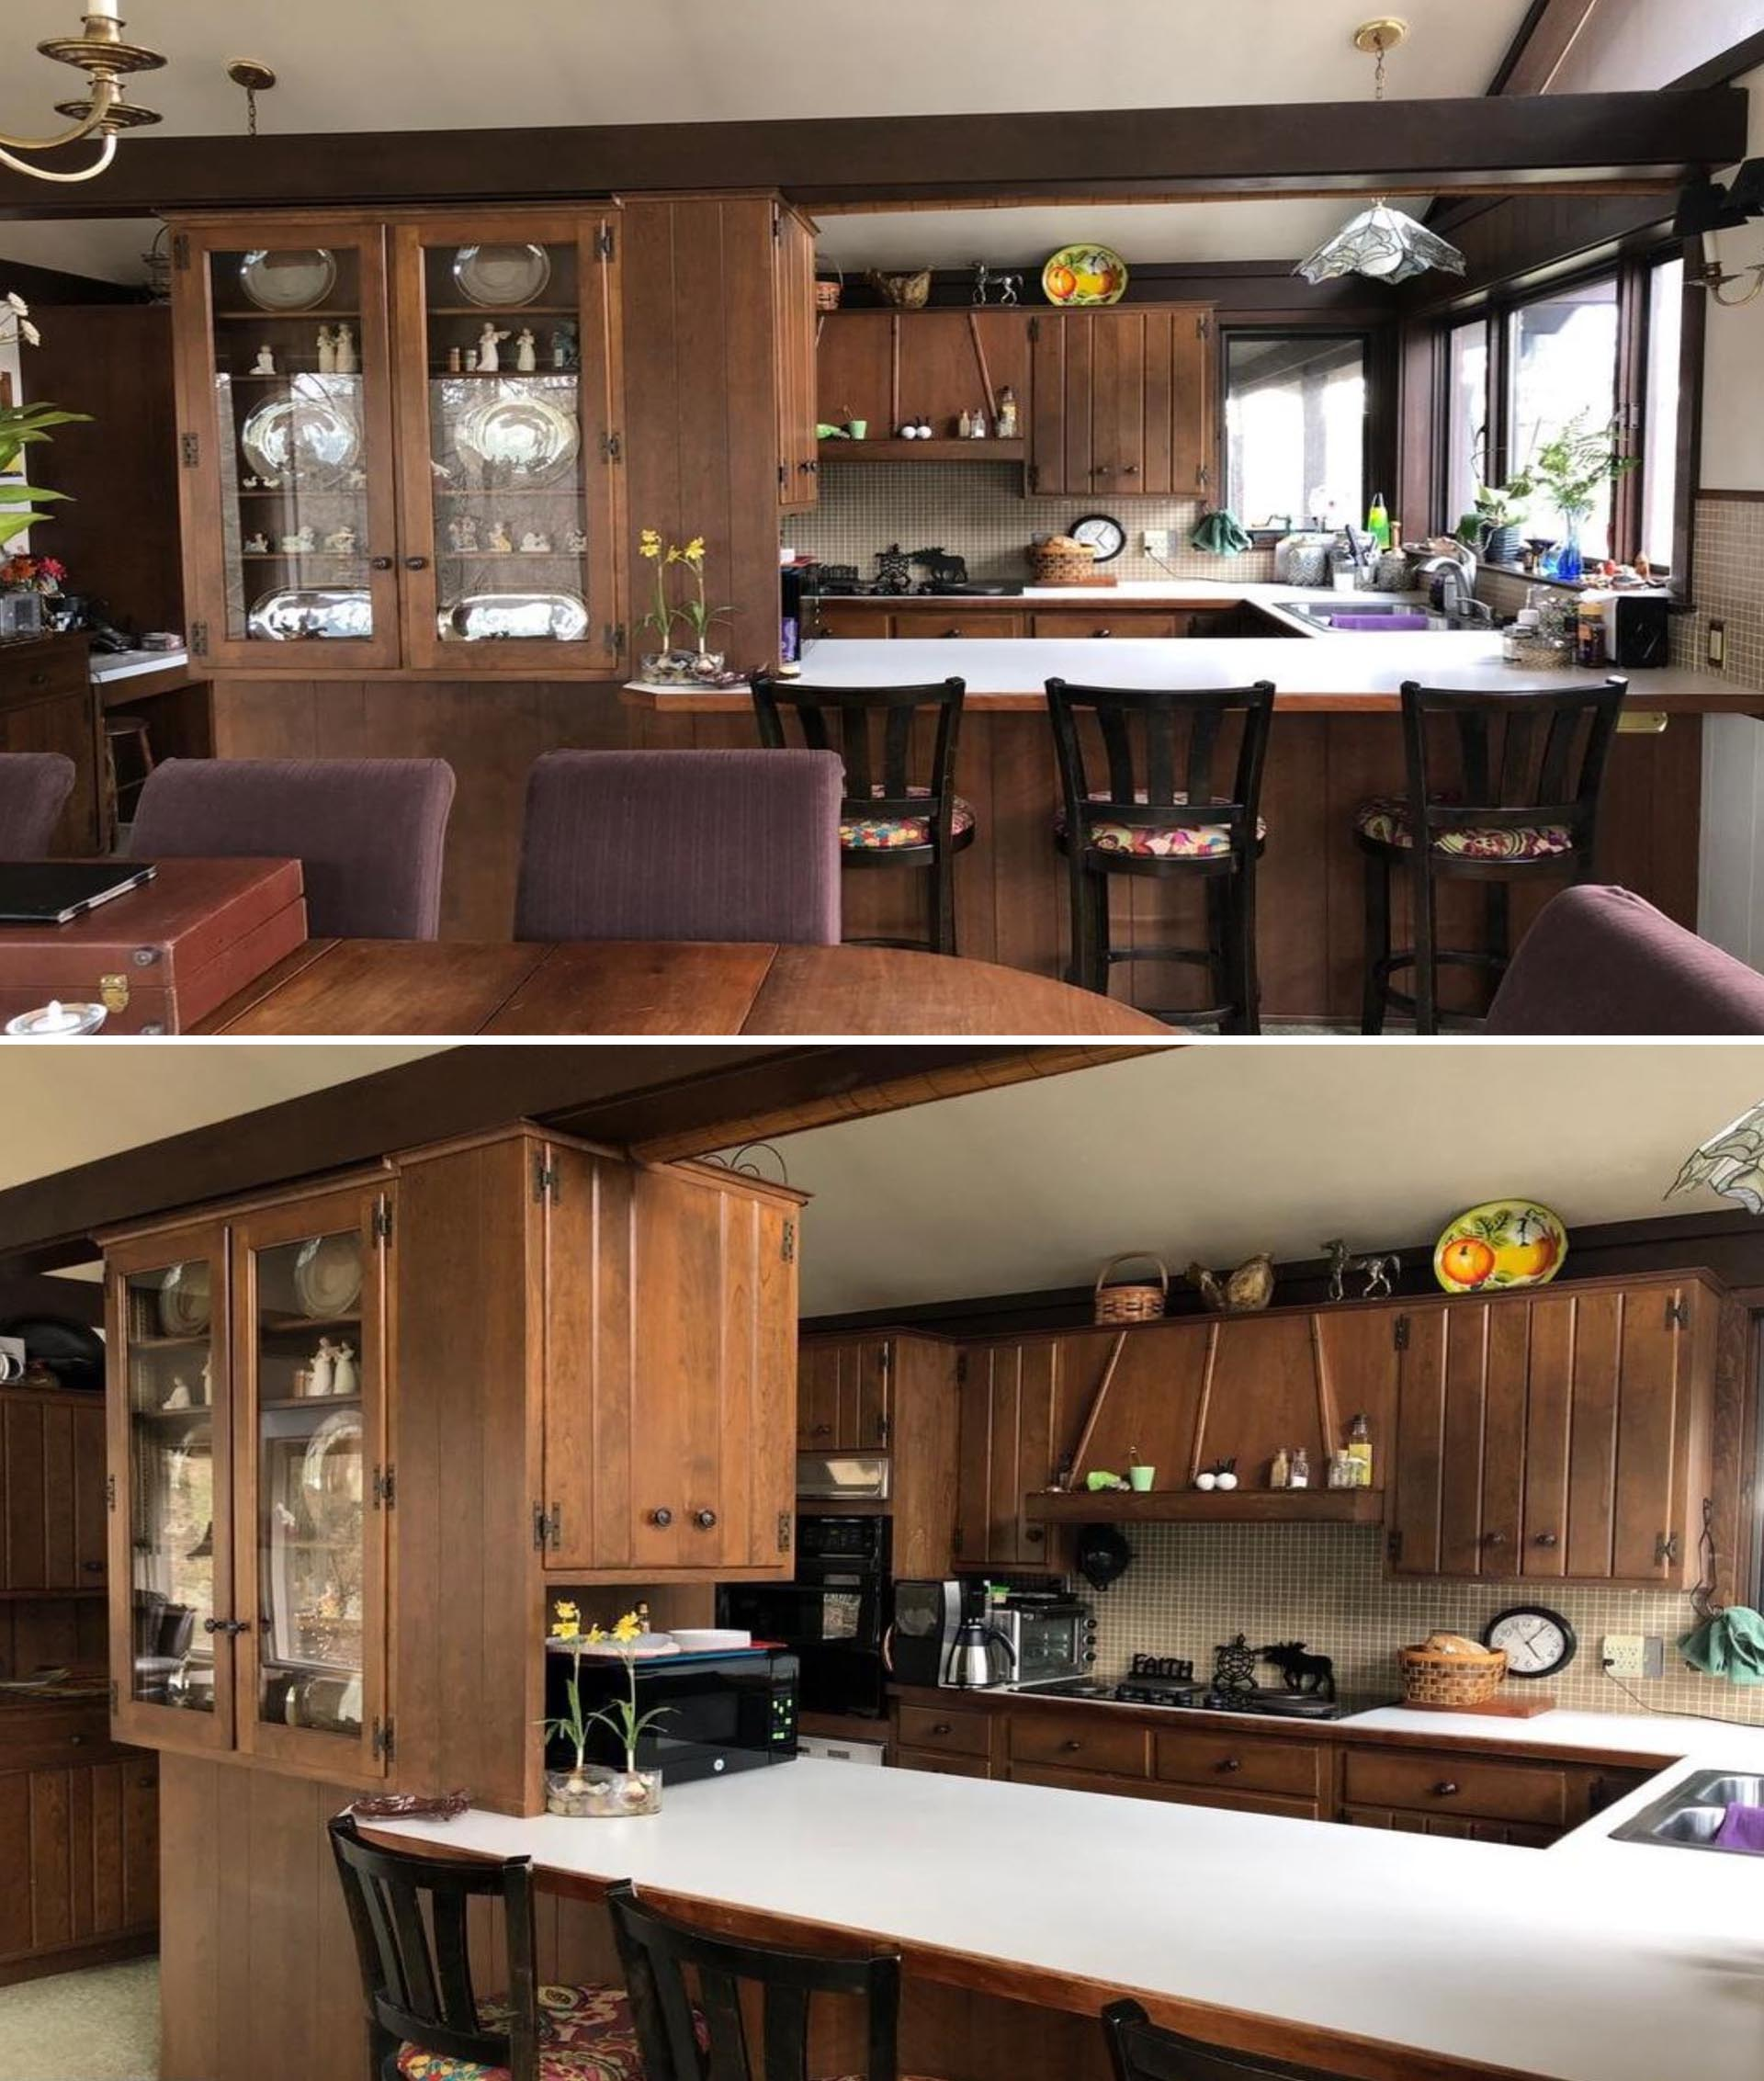 A wood kitchen before a complete renovation.